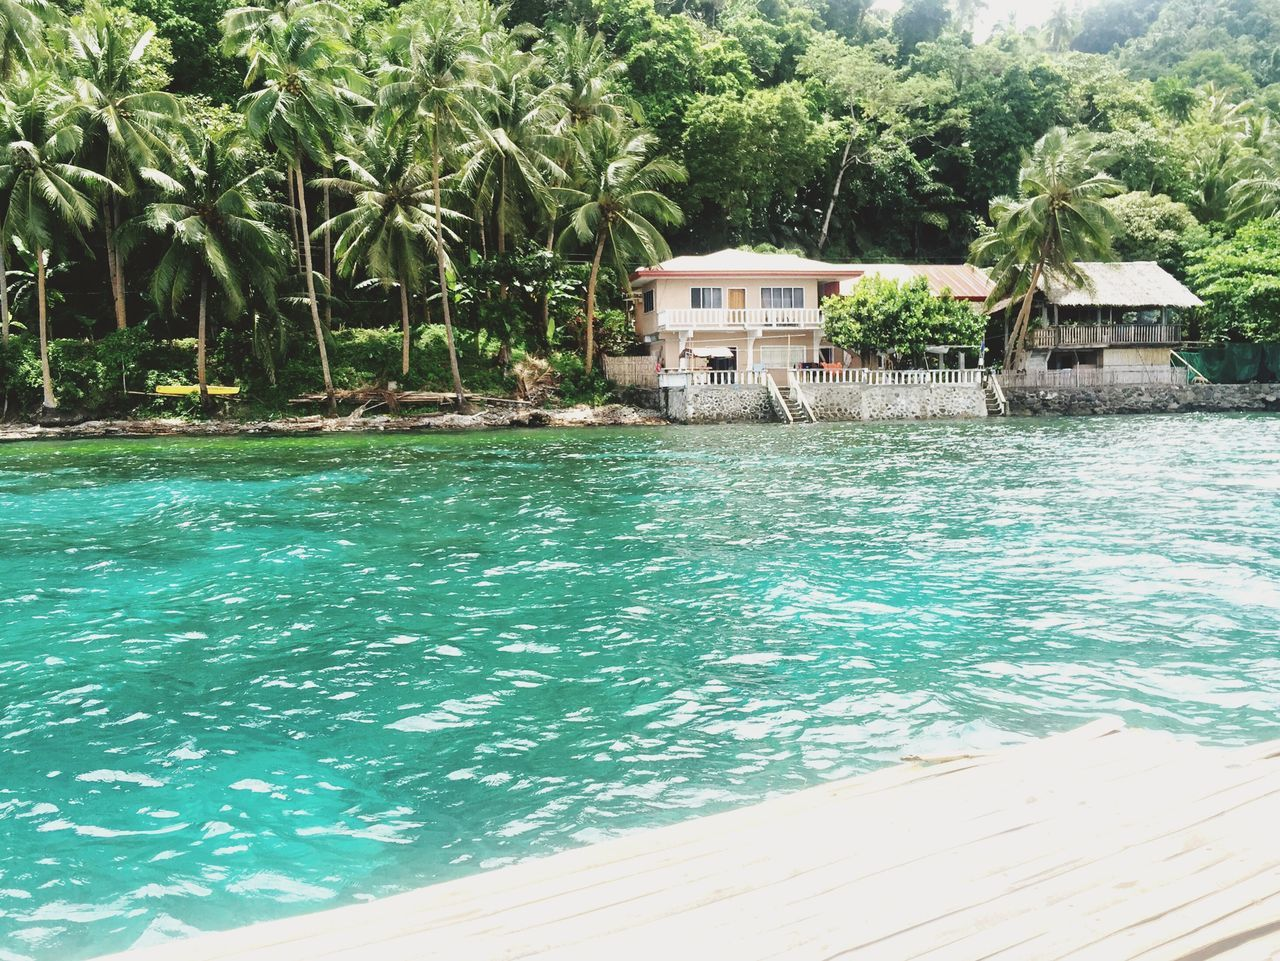 water, built structure, palm tree, sea, building exterior, architecture, tourist resort, house, day, outdoors, swimming pool, tropical climate, beauty in nature, tree, vacations, beach, stilt house, no people, nature, scenics, holiday villa, travel destinations